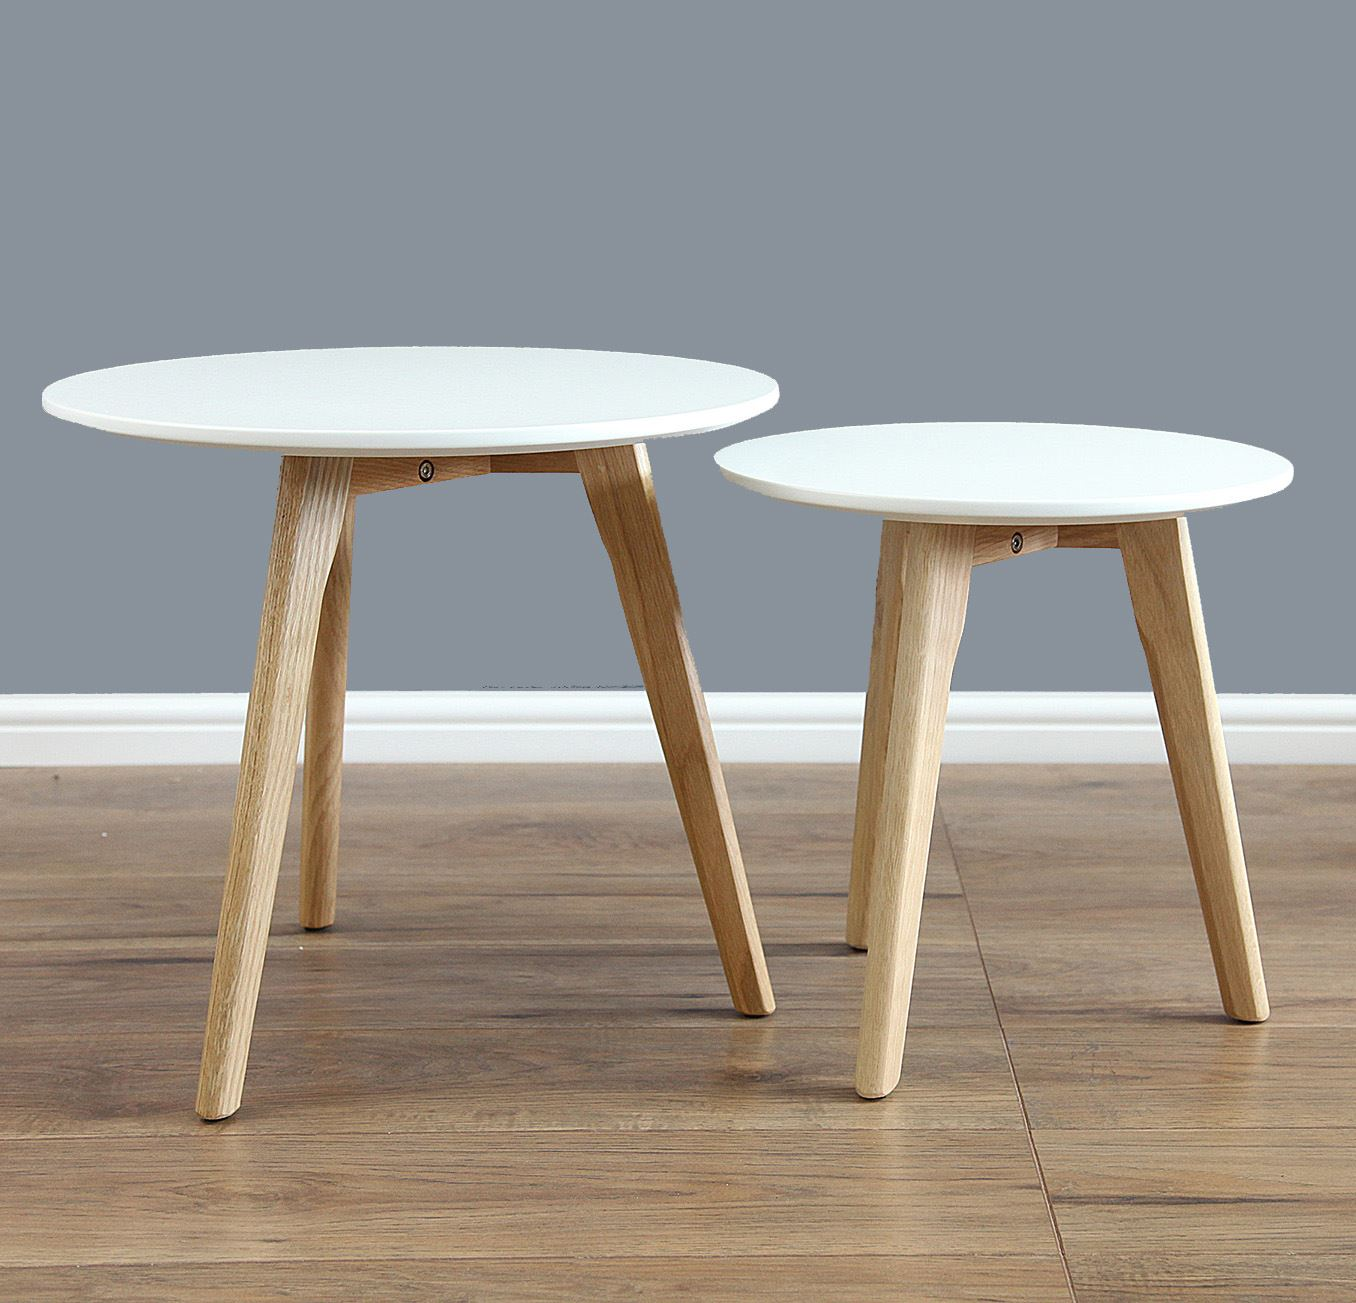 Round Coffee Table Pair: Scandinavian Nest Of Table Nesting Table Round Set In Pair